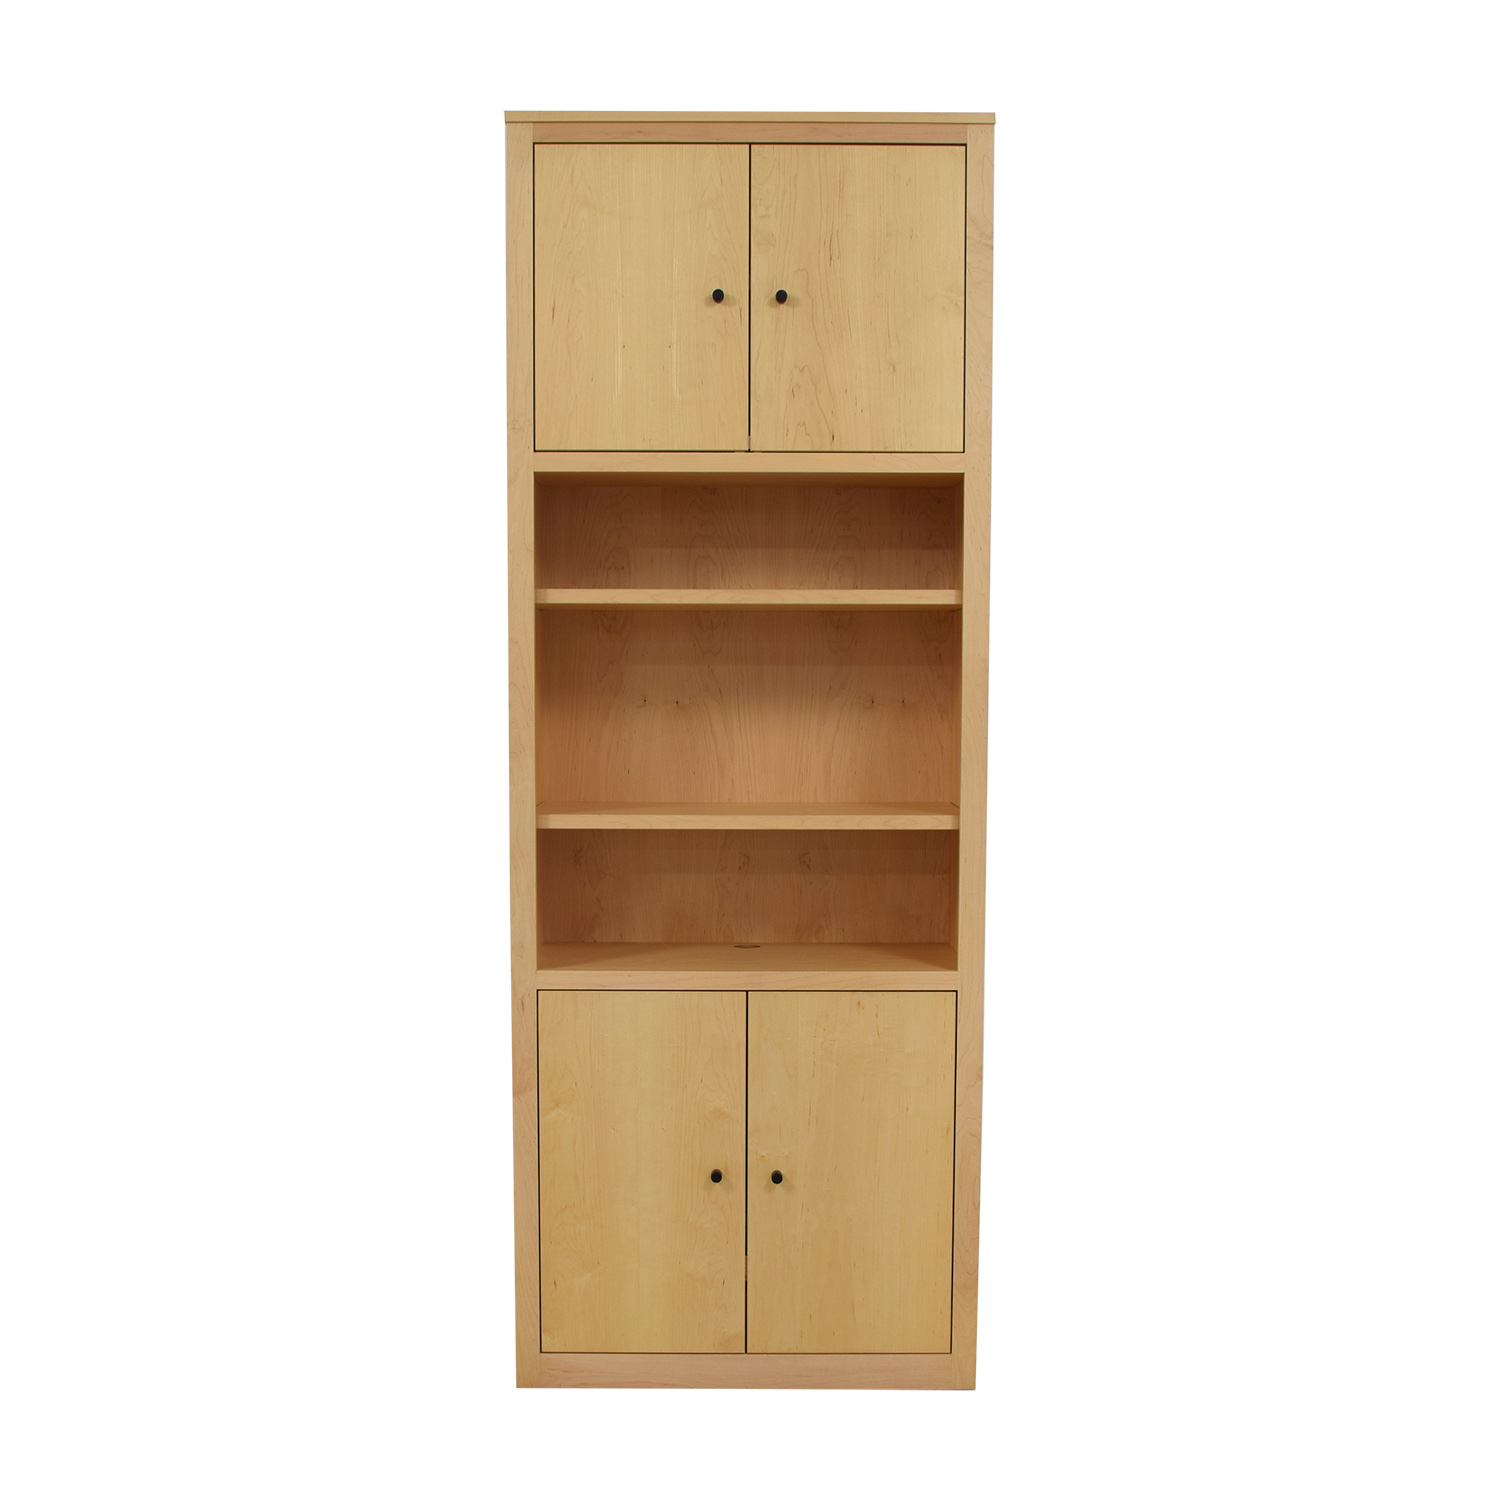 shop Room & Board Woodwind Bookcase with Doors Room & Board